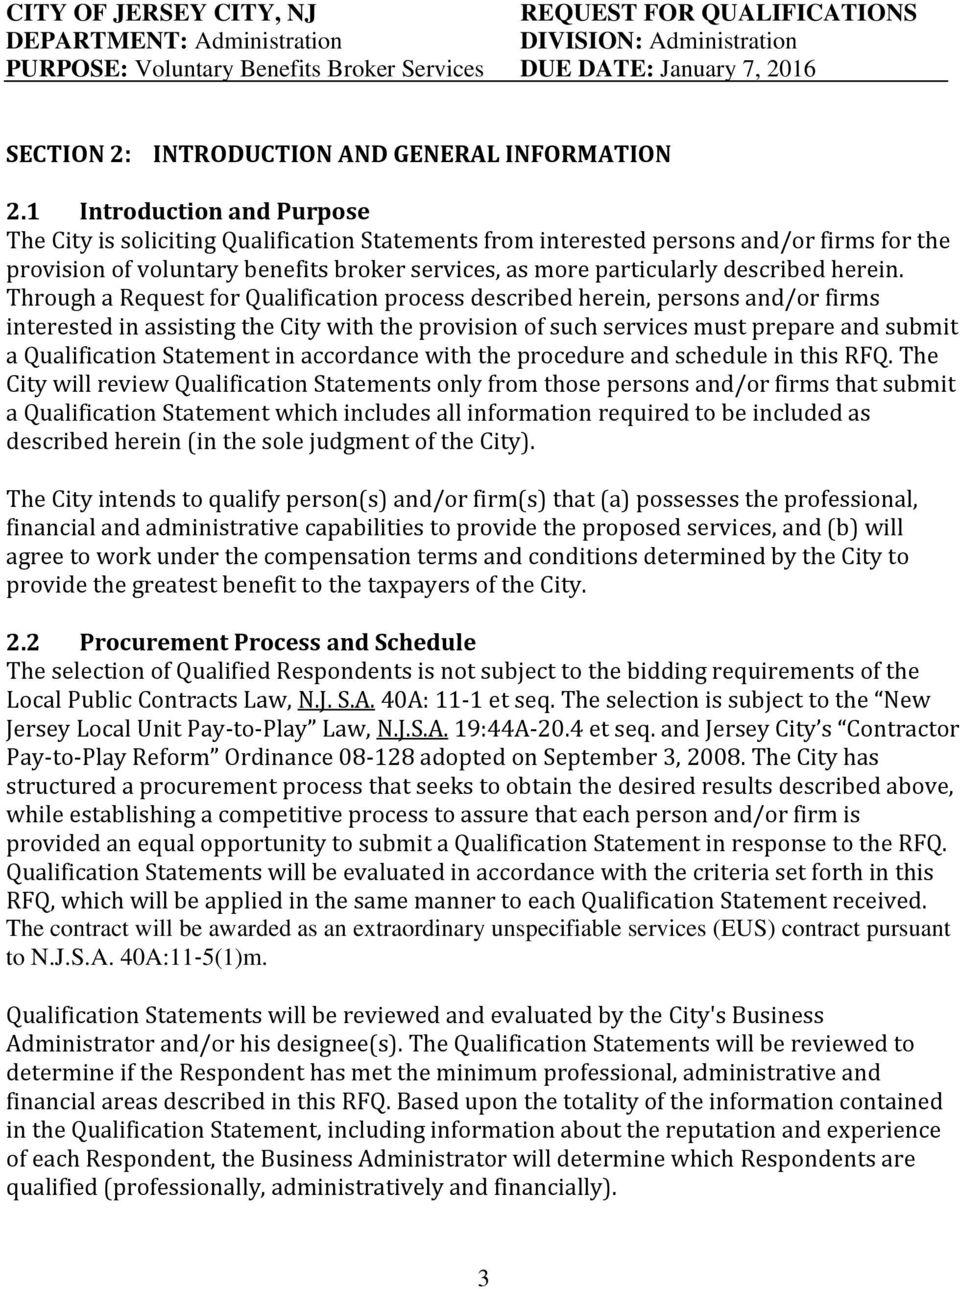 1 Introduction and Purpose The City is soliciting Qualification Statements from interested persons and/or firms for the provision of voluntary benefits broker services, as more particularly described